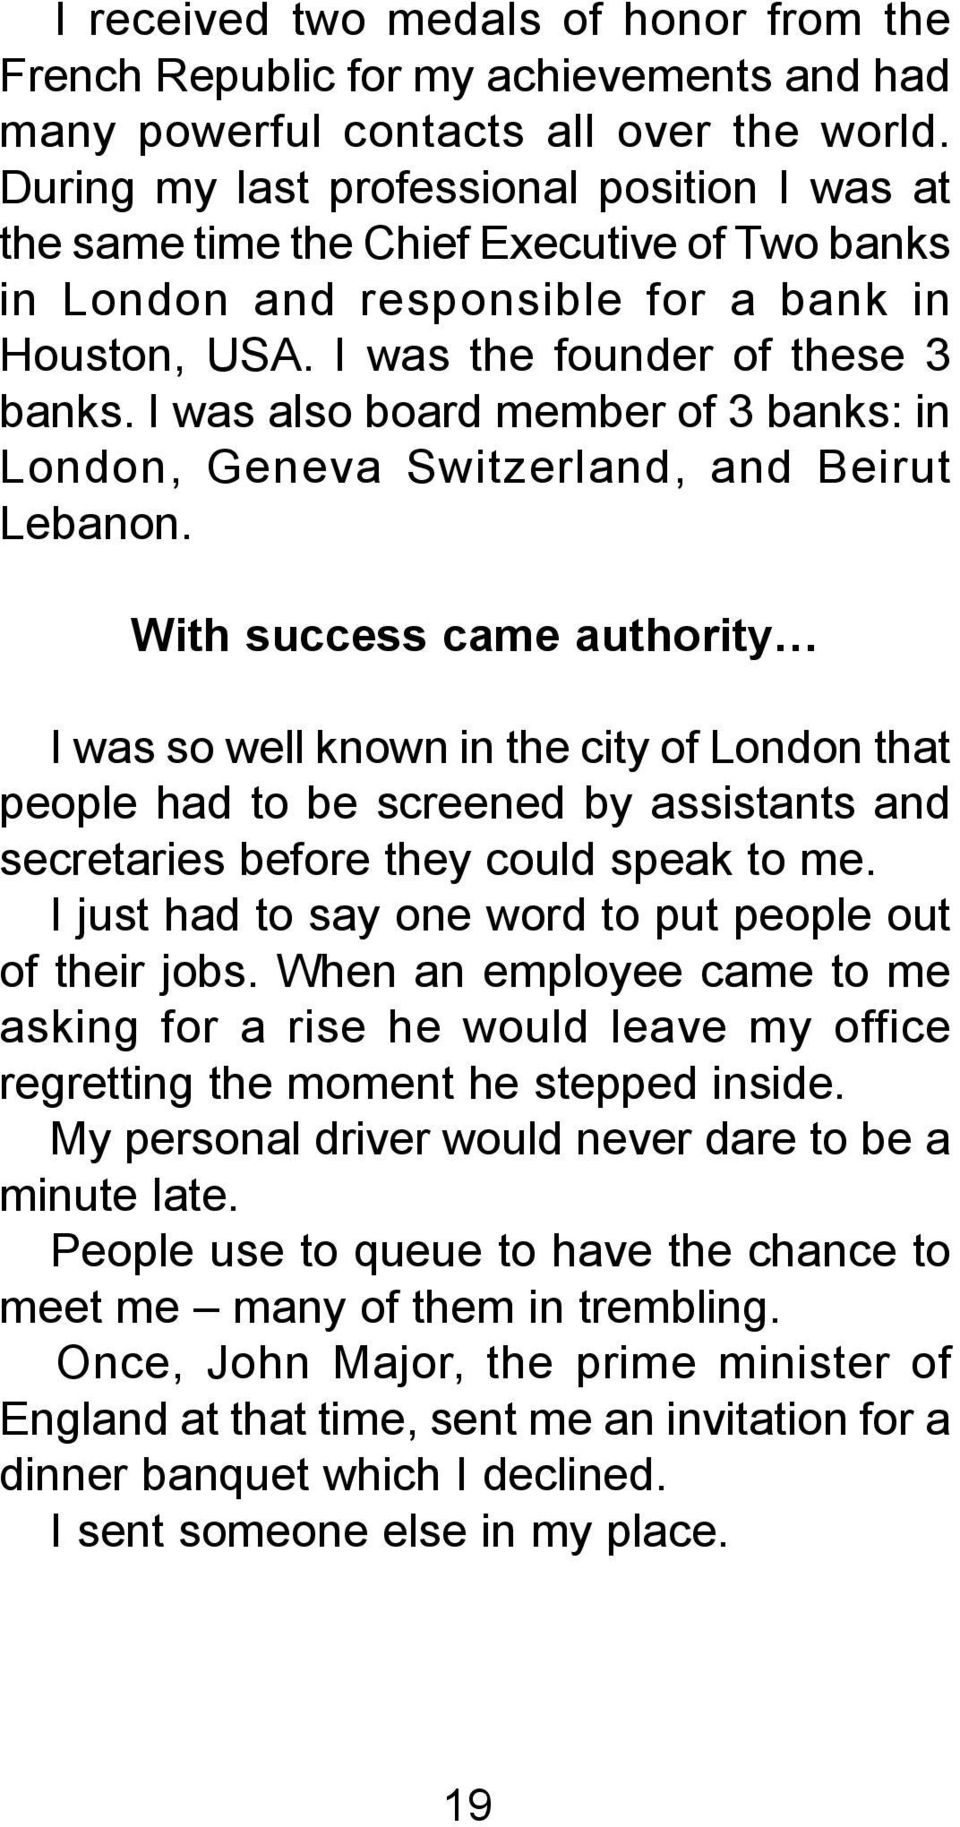 I was also board member of 3 banks: in London, Geneva Switzerland, and Beirut Lebanon.